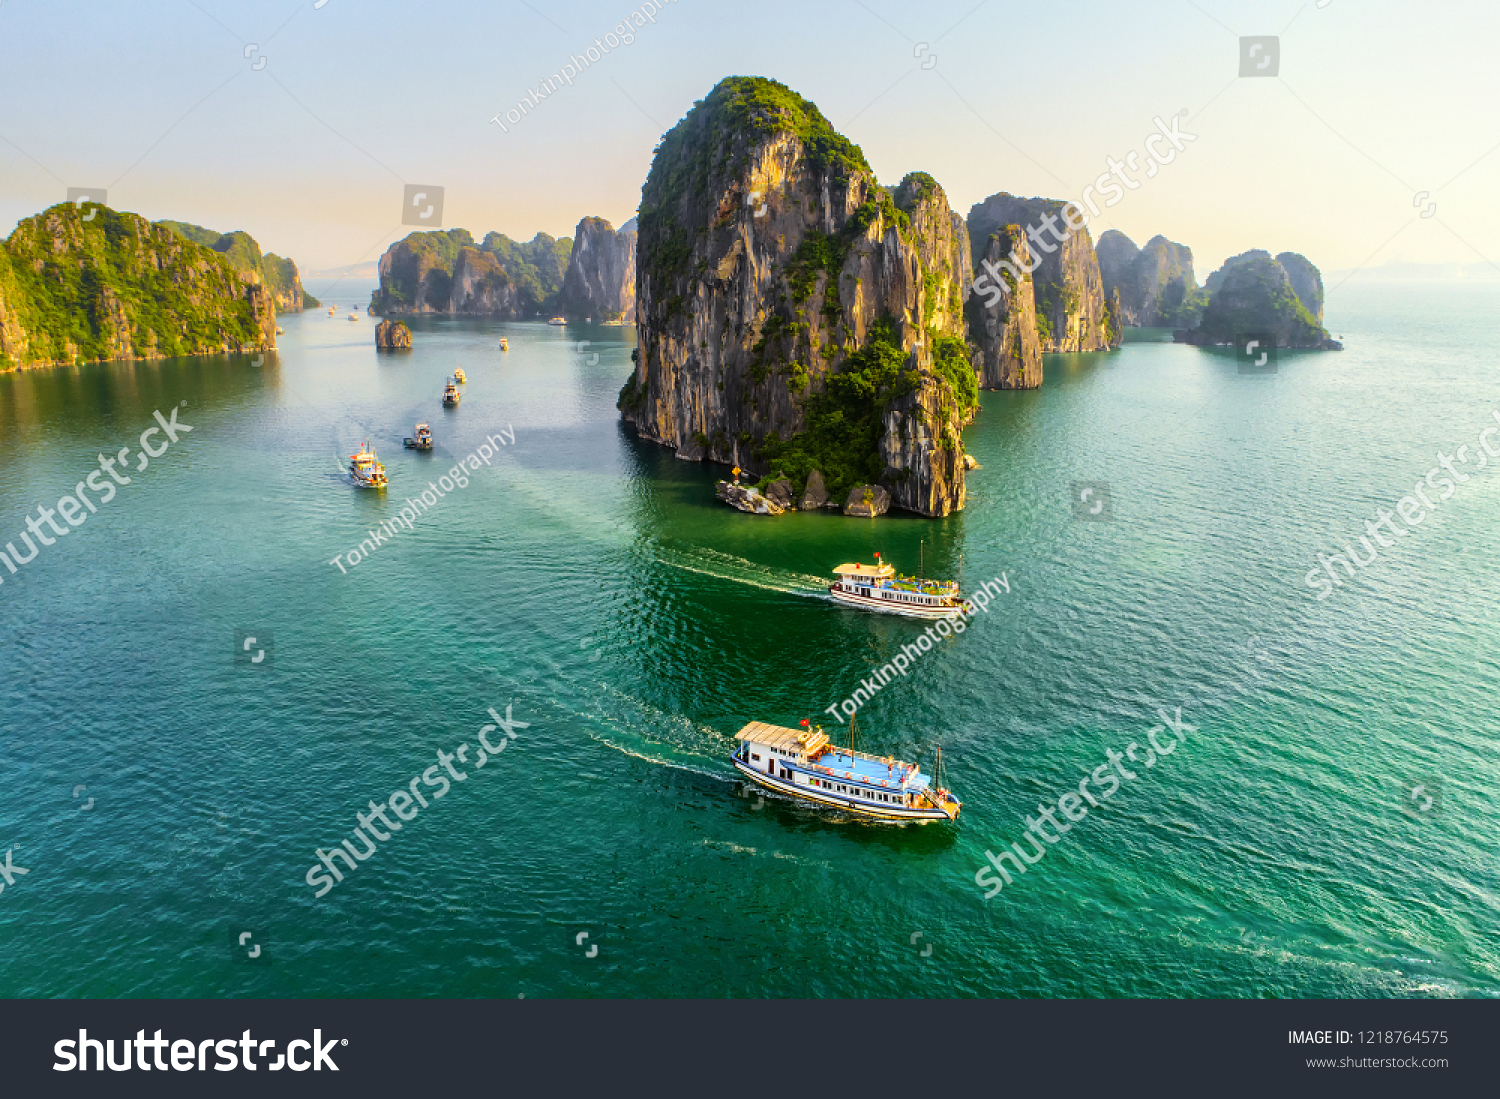 Aerial view floating fishing village and rock island, Halong Bay, Vietnam, Southeast Asia. UNESCO World Heritage Site. Junk boat cruise to Ha Long Bay. Popular landmark, famous destination of Vietnam #1218764575